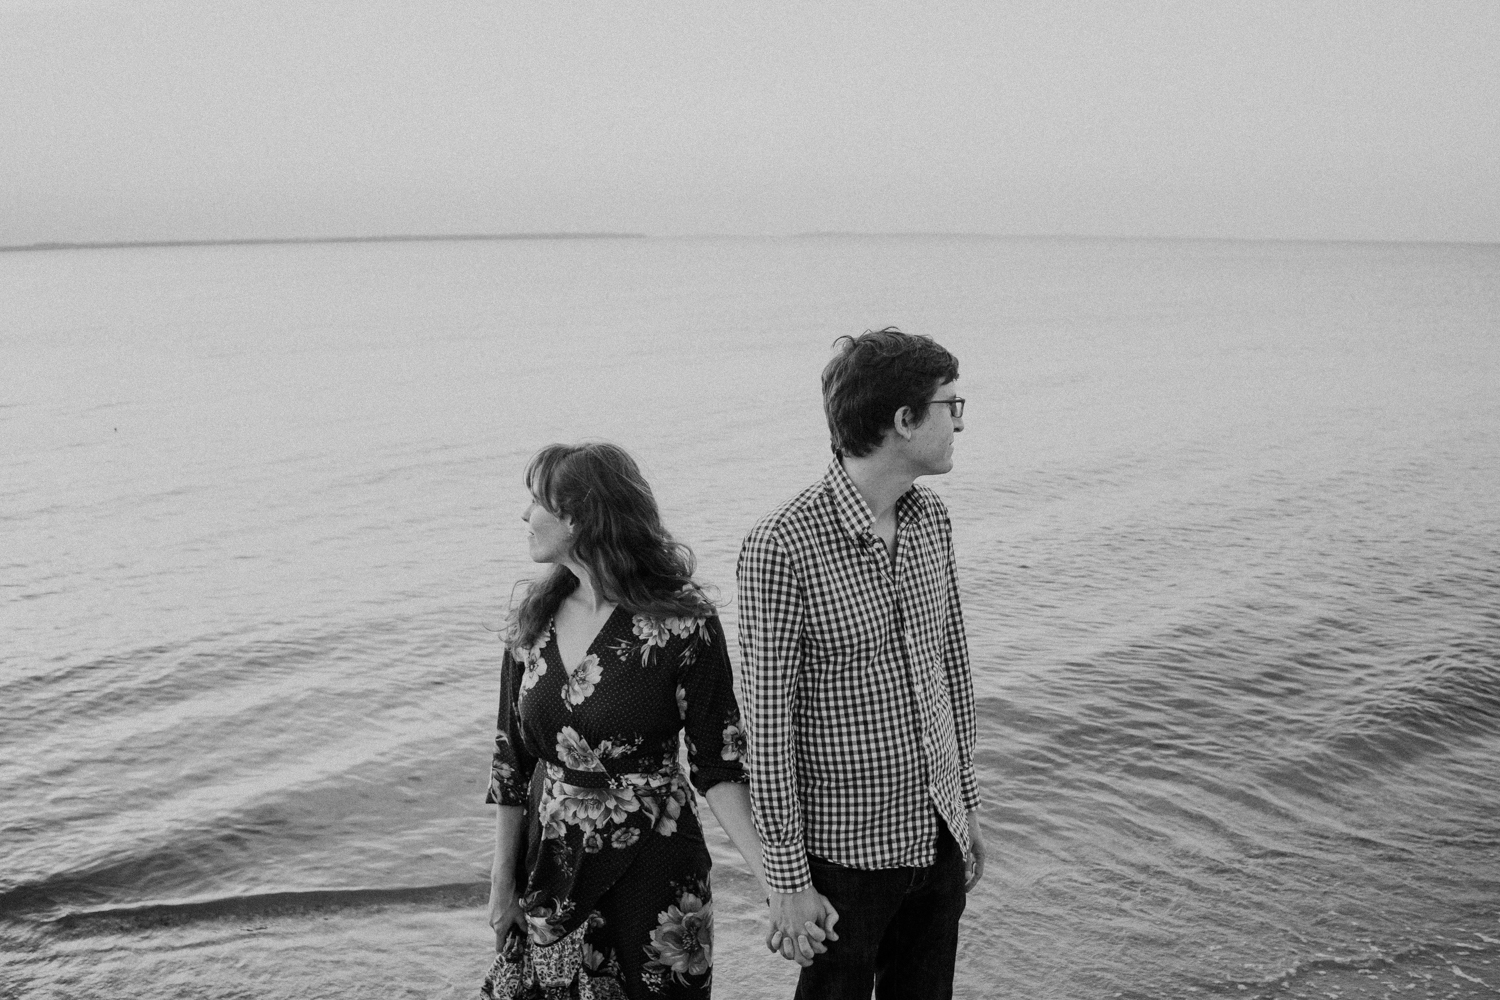 maryland chesapeake bay moody black and white engagement photos on the water